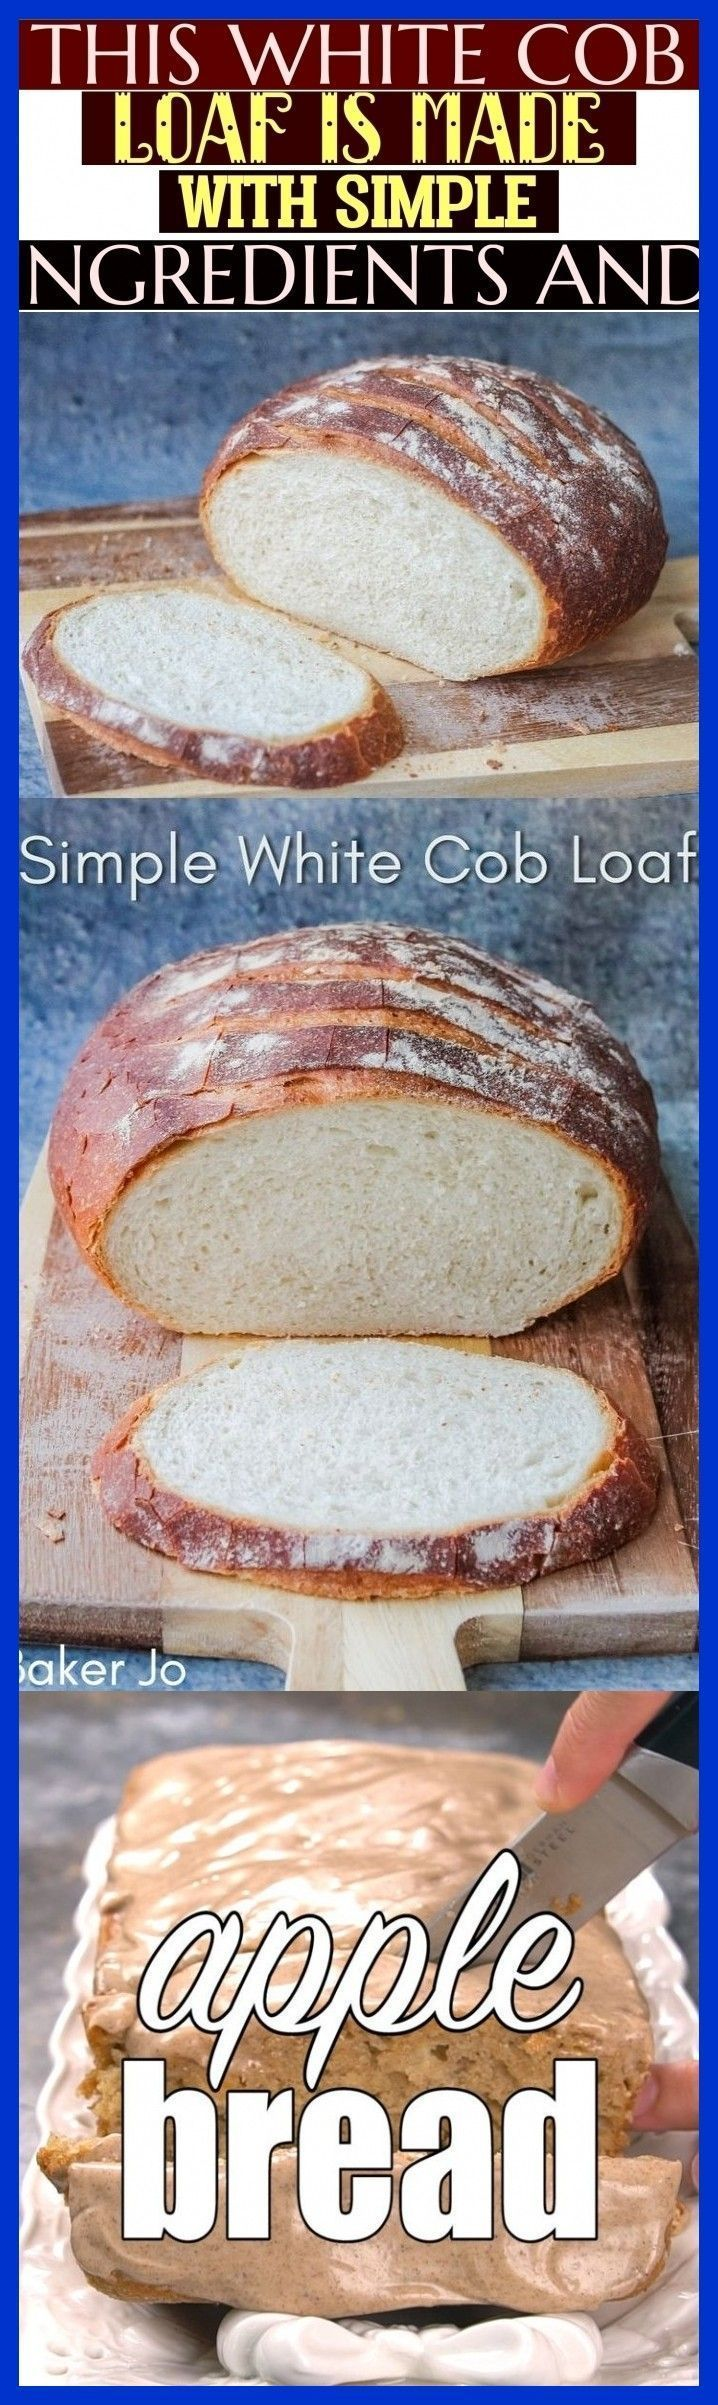 This White Cob Loaf Is Made With Simple Ingredients And Dieses Weiße Cob Loaf Ist Mit Einfachen Zutaten Hergestellt Und | Bread Ideas #cobloaf This White Cob Loaf Is Made With Simple Ingredients And | dieses weiße cob loaf ist mit einfachen zutaten hergestellt und #recipesbread #cobloaf This White Cob Loaf Is Made With Simple Ingredients And Dieses Weiße Cob Loaf Ist Mit Einfachen Zutaten Hergestellt Und | Bread Ideas #cobloaf This White Cob Loaf Is Made With Simple Ingredients And | dieses w #cobloaf